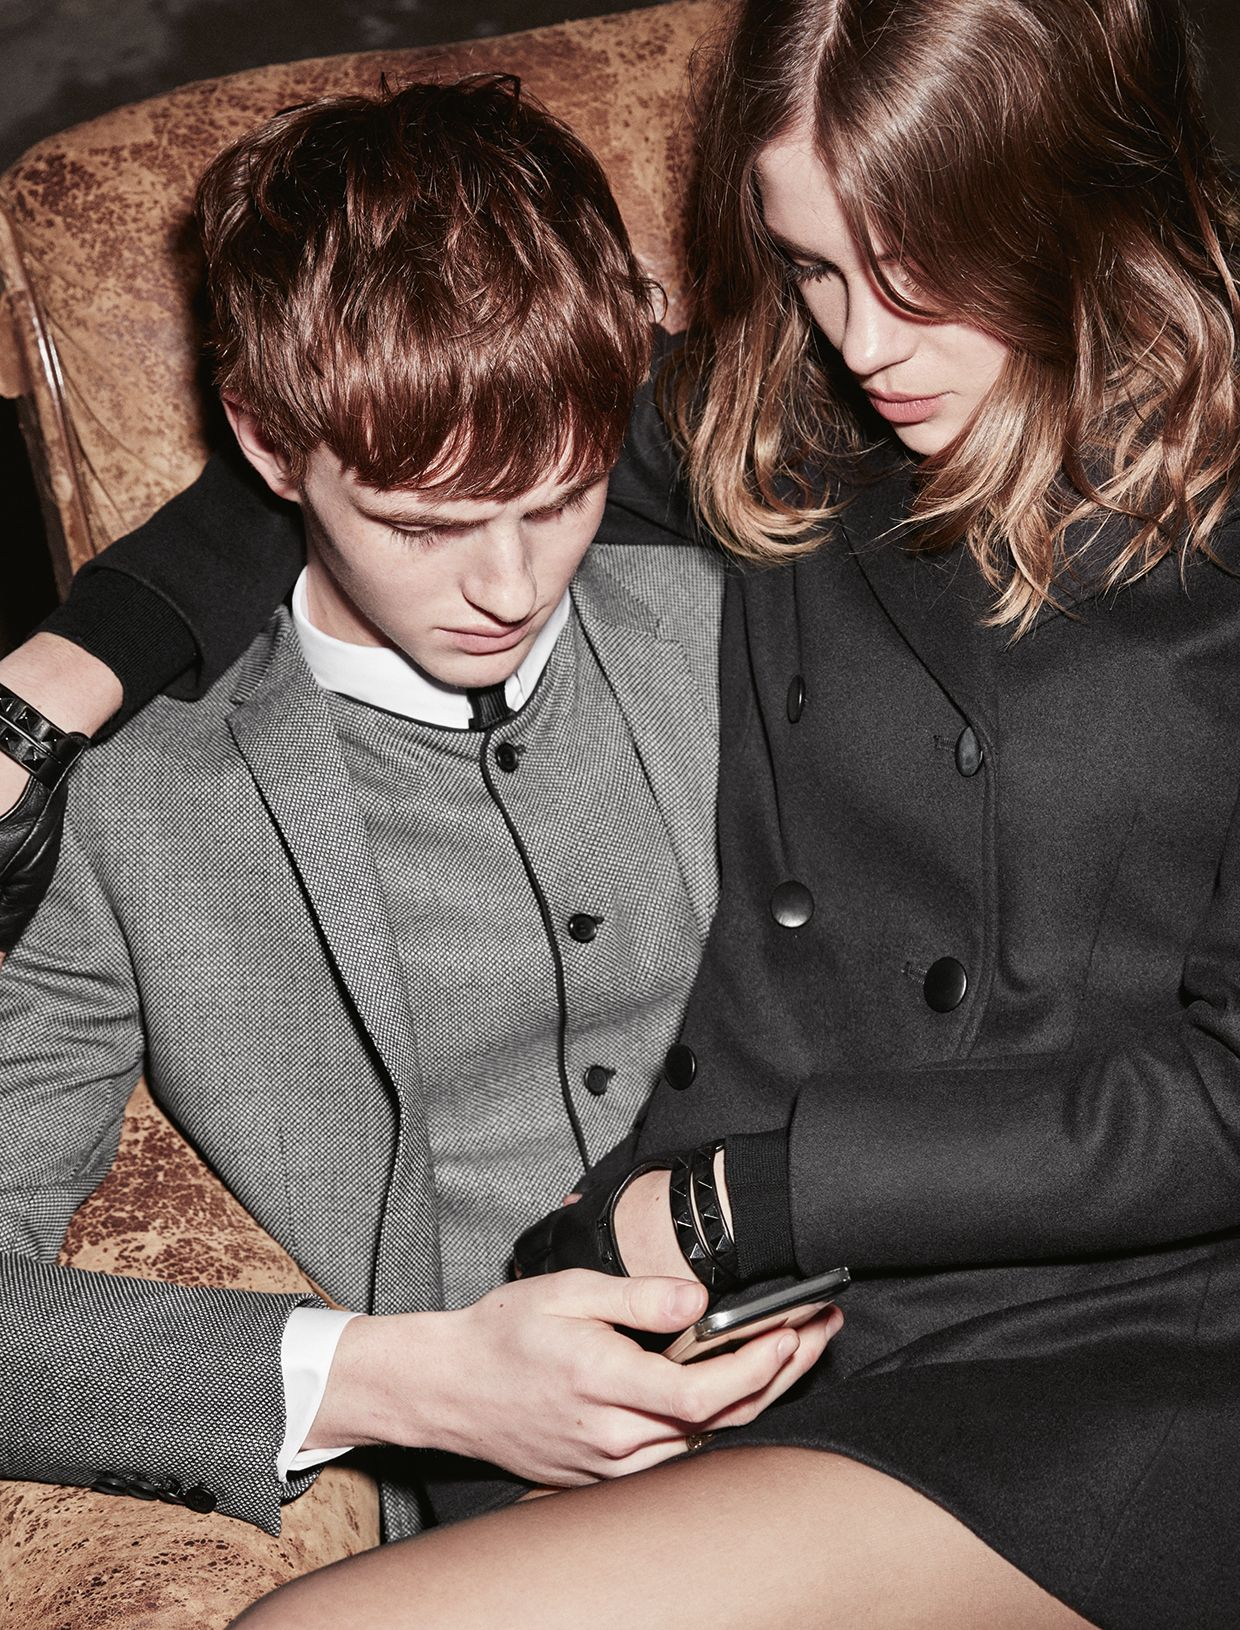 FINN & EMMA have been a couple for 6 months www.thekooples.com